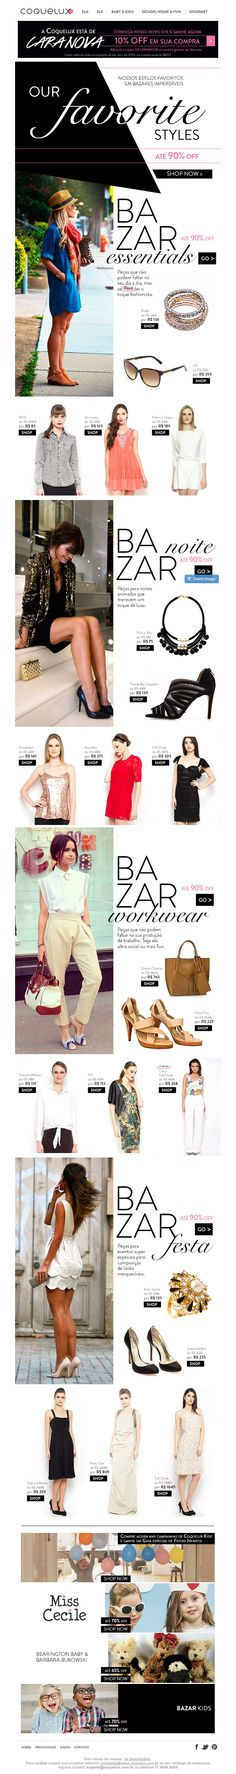 Coquelux   newsletter   fashion email   fashion design   email   email marketing   email inspiration   e-mail